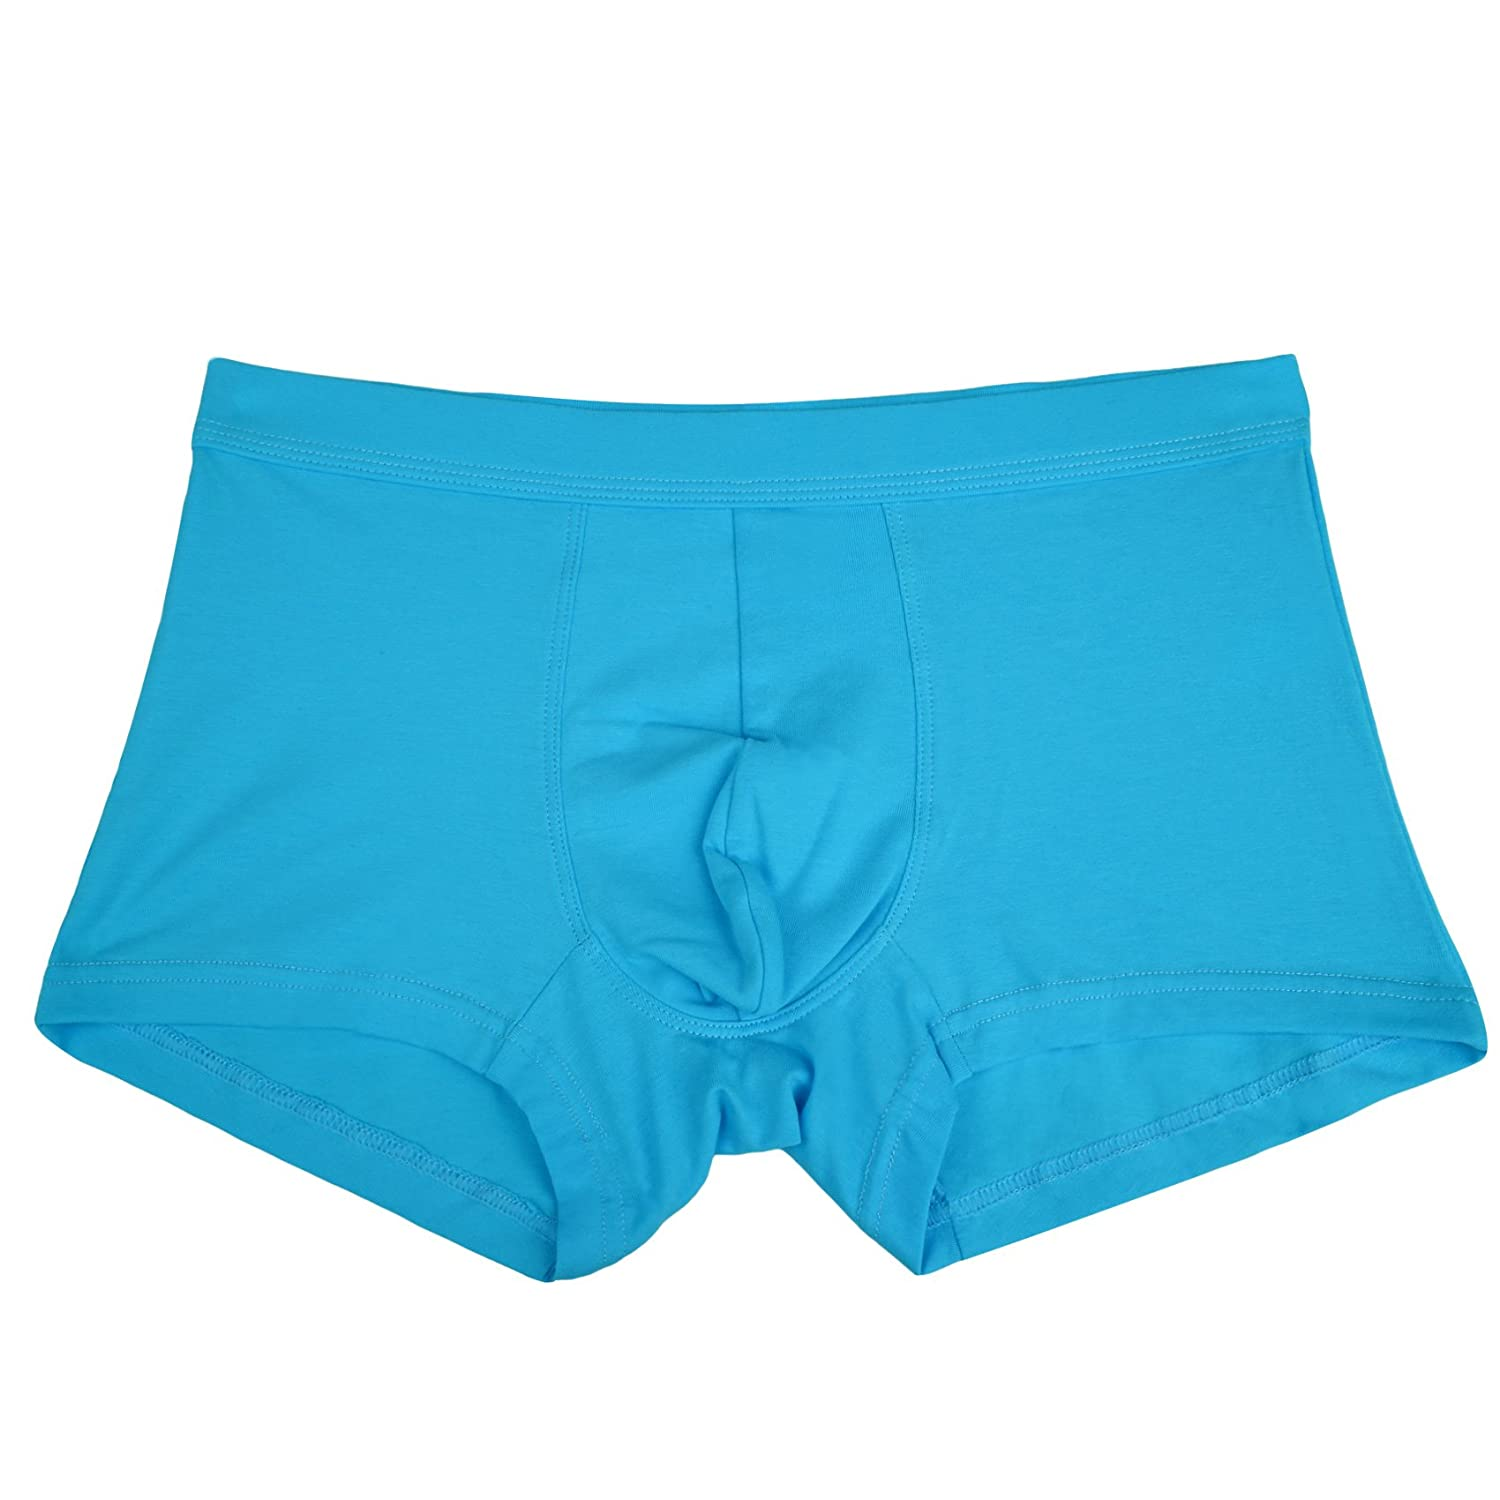 Yulee Mens Breathable Cotton Boxer Briefs Assorted Underwear 4 Pack